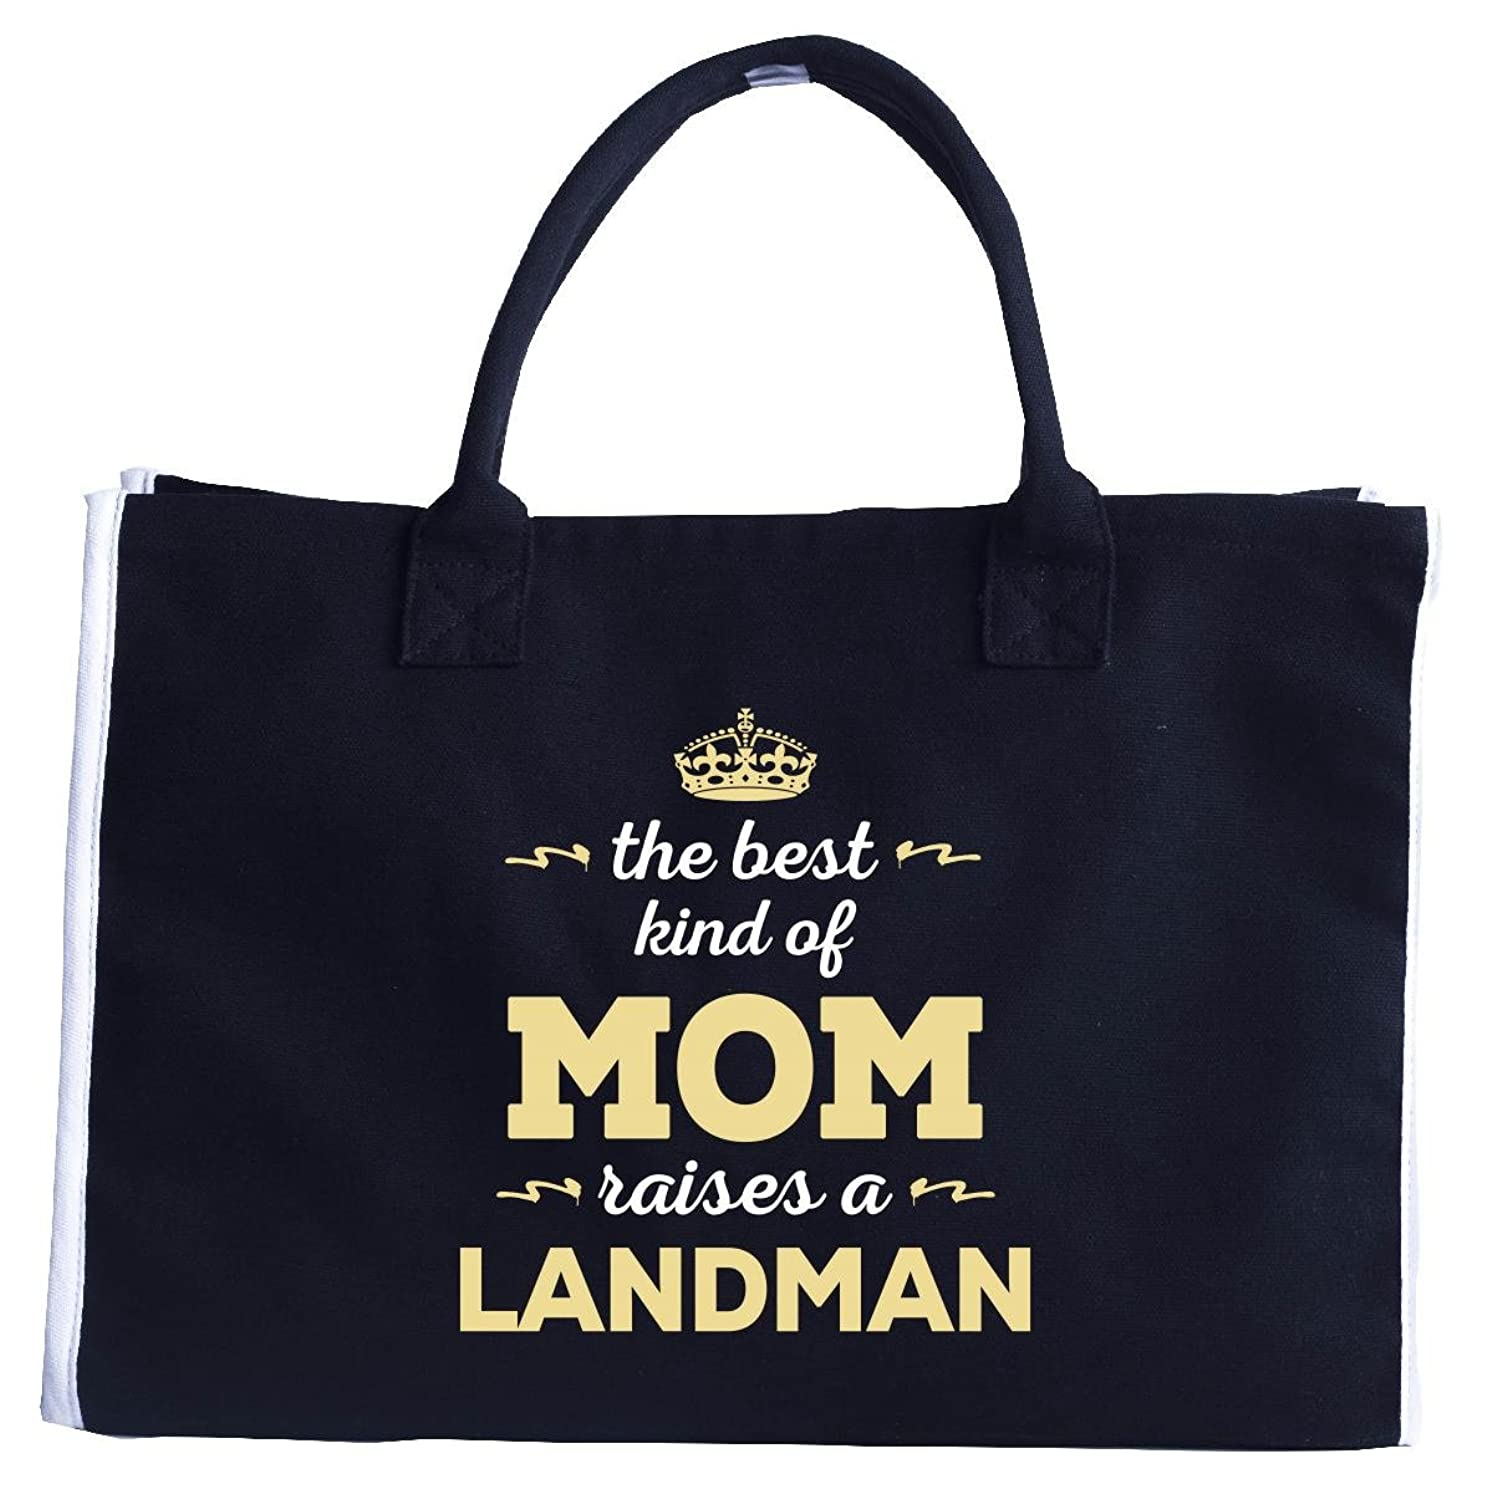 The Best Kind Of Mom Raises A Landman. Gift For Mom - Fashion Tote Bag